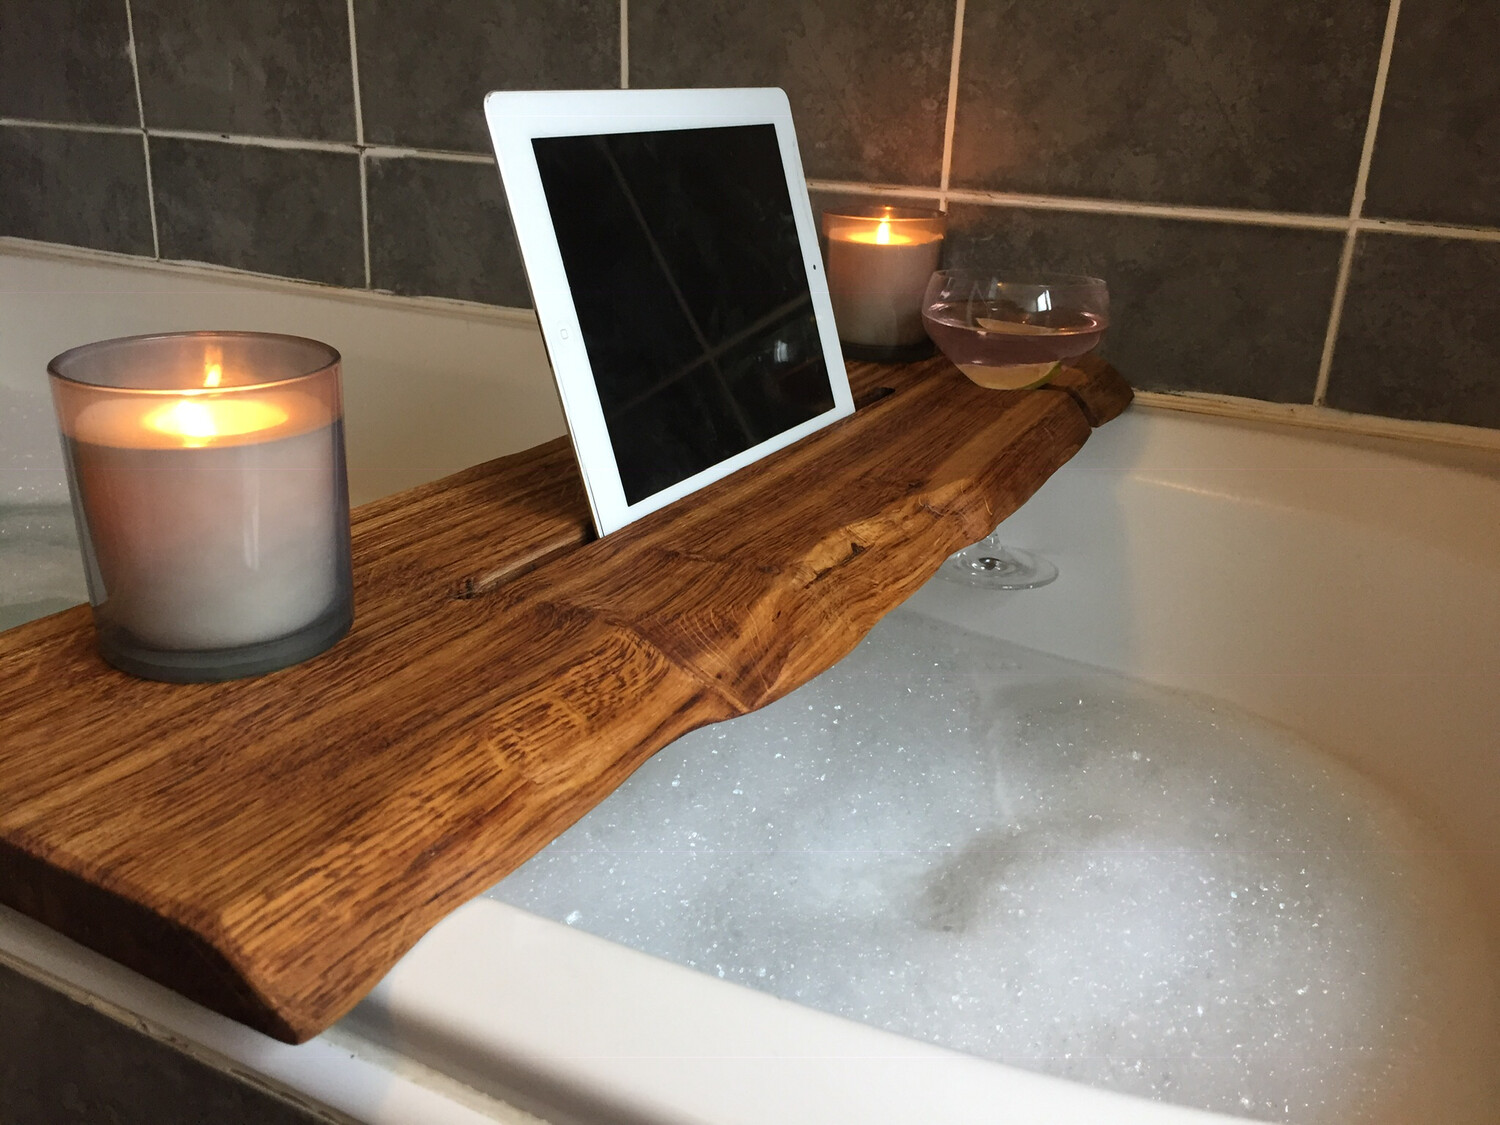 Live Edge Solid Oak wood Bespoke Rustic Bath Caddy Tray Tablet wine glass Holder